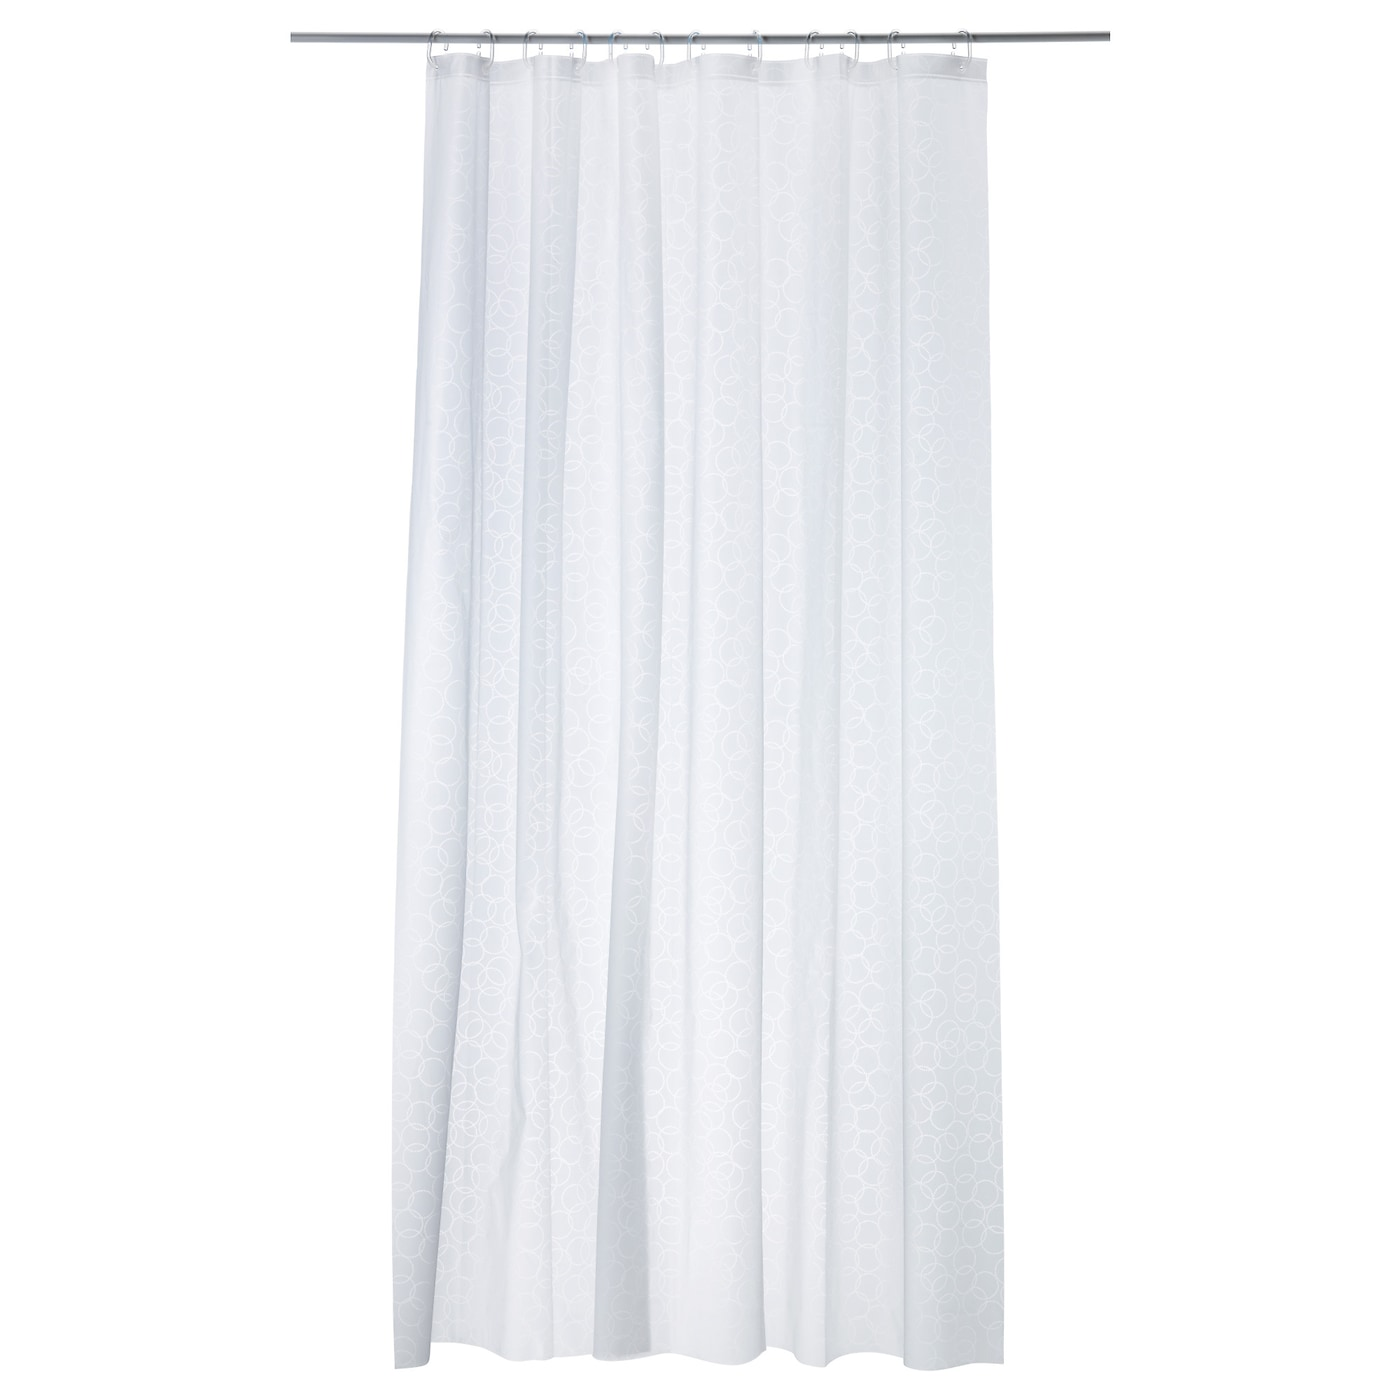 Nice IKEA INNAREN Shower Curtain Can Be Easily Cut To The Desired Length.